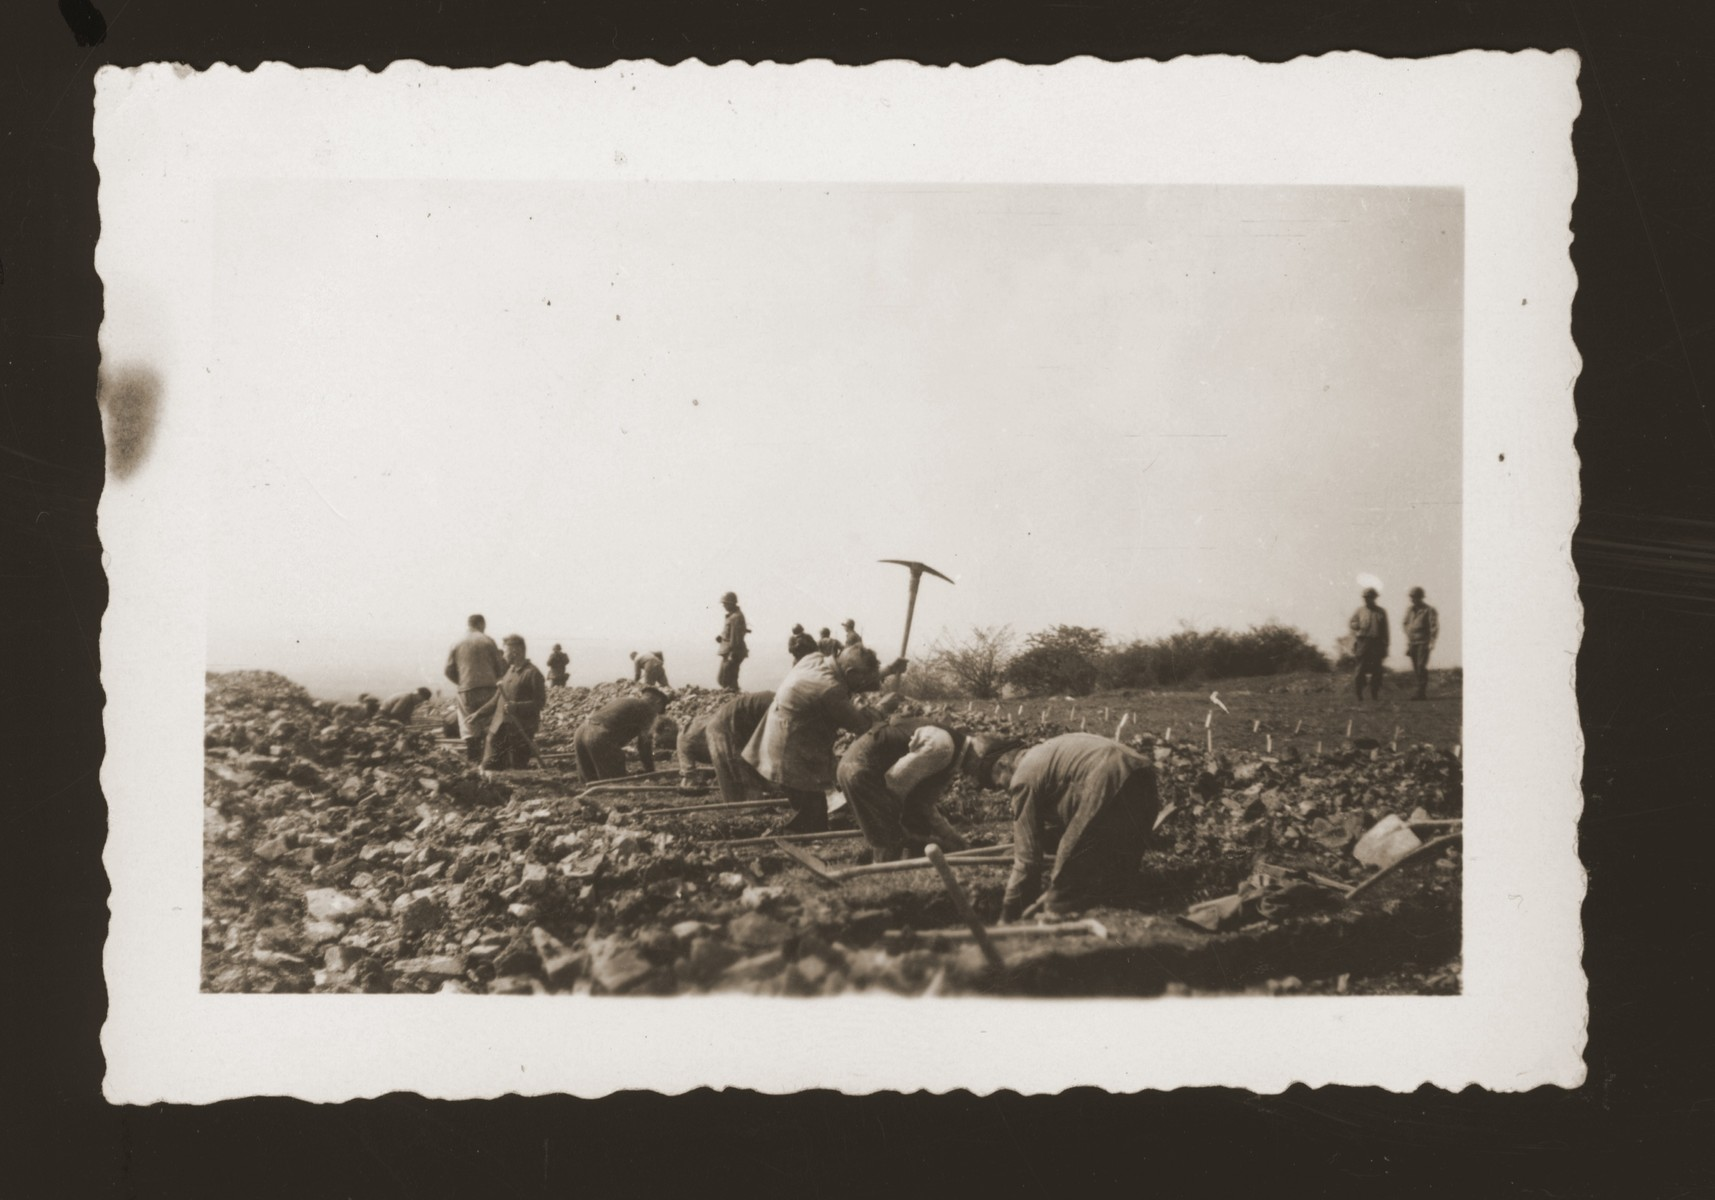 Germans are forced to prepare graves for the victims of Ohrdruf.